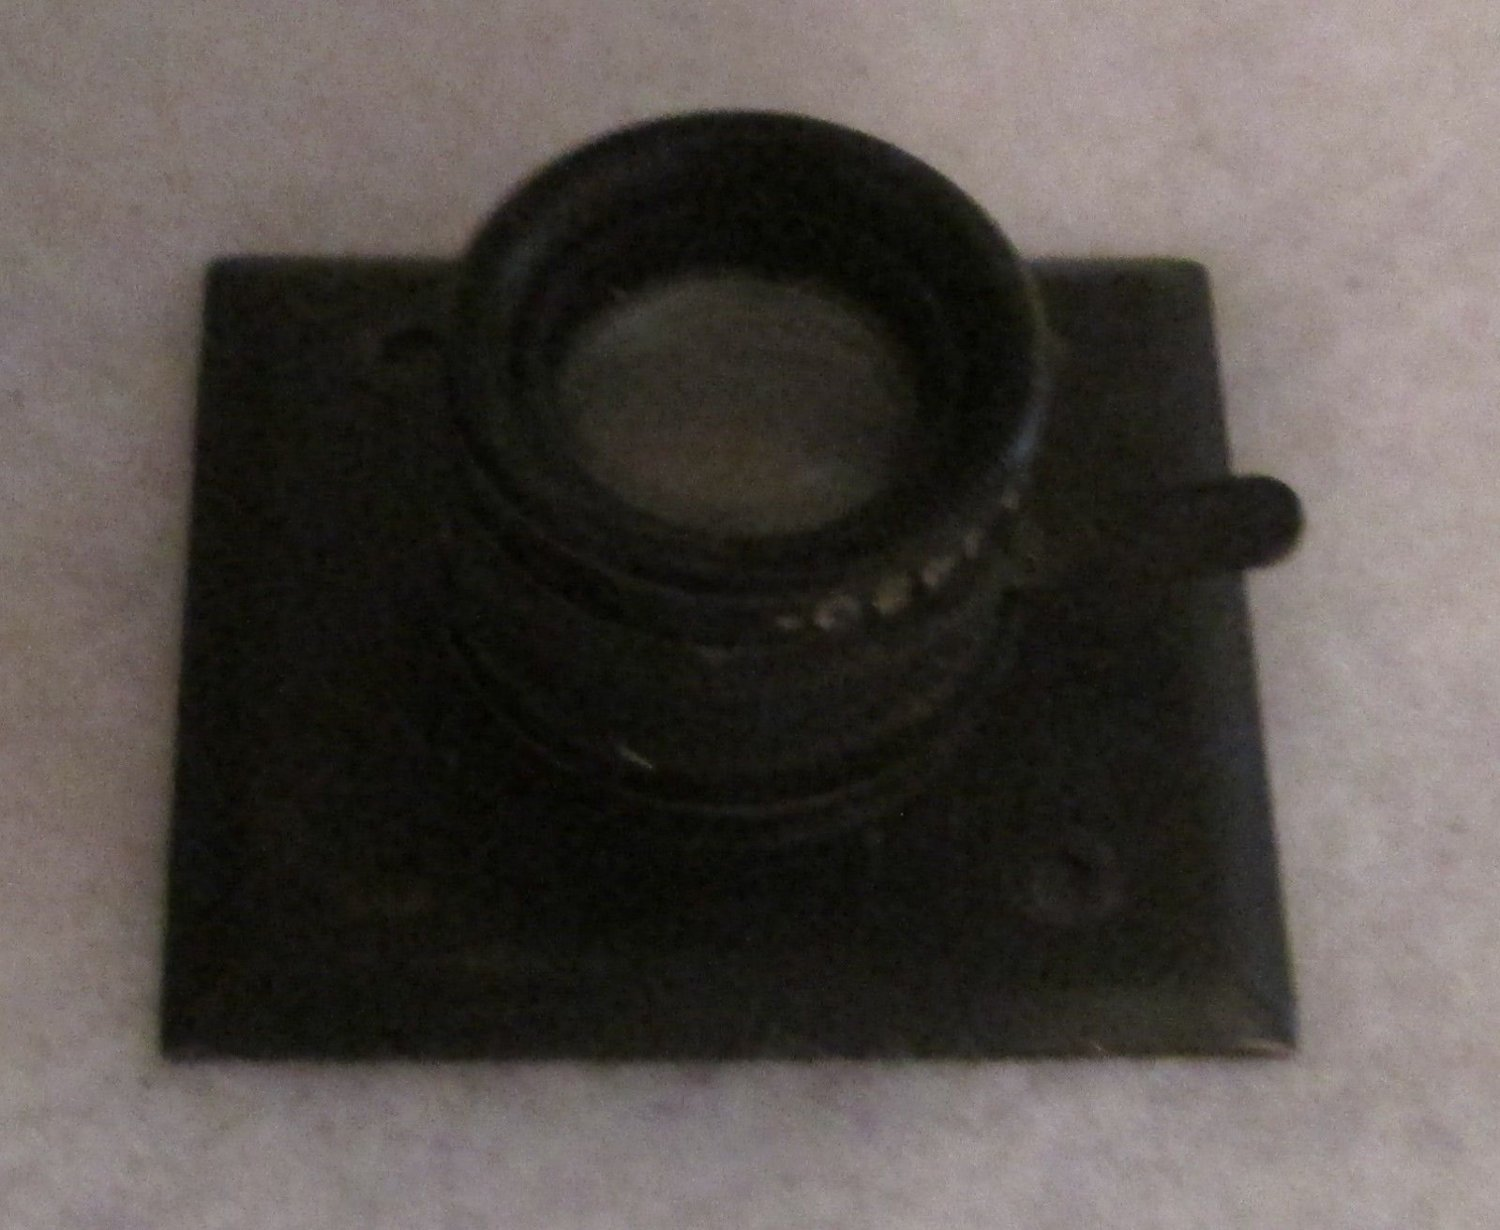 "antique Anastigmat EF 31430.5"" f 6.3 Enlarging Lens No. 1430"